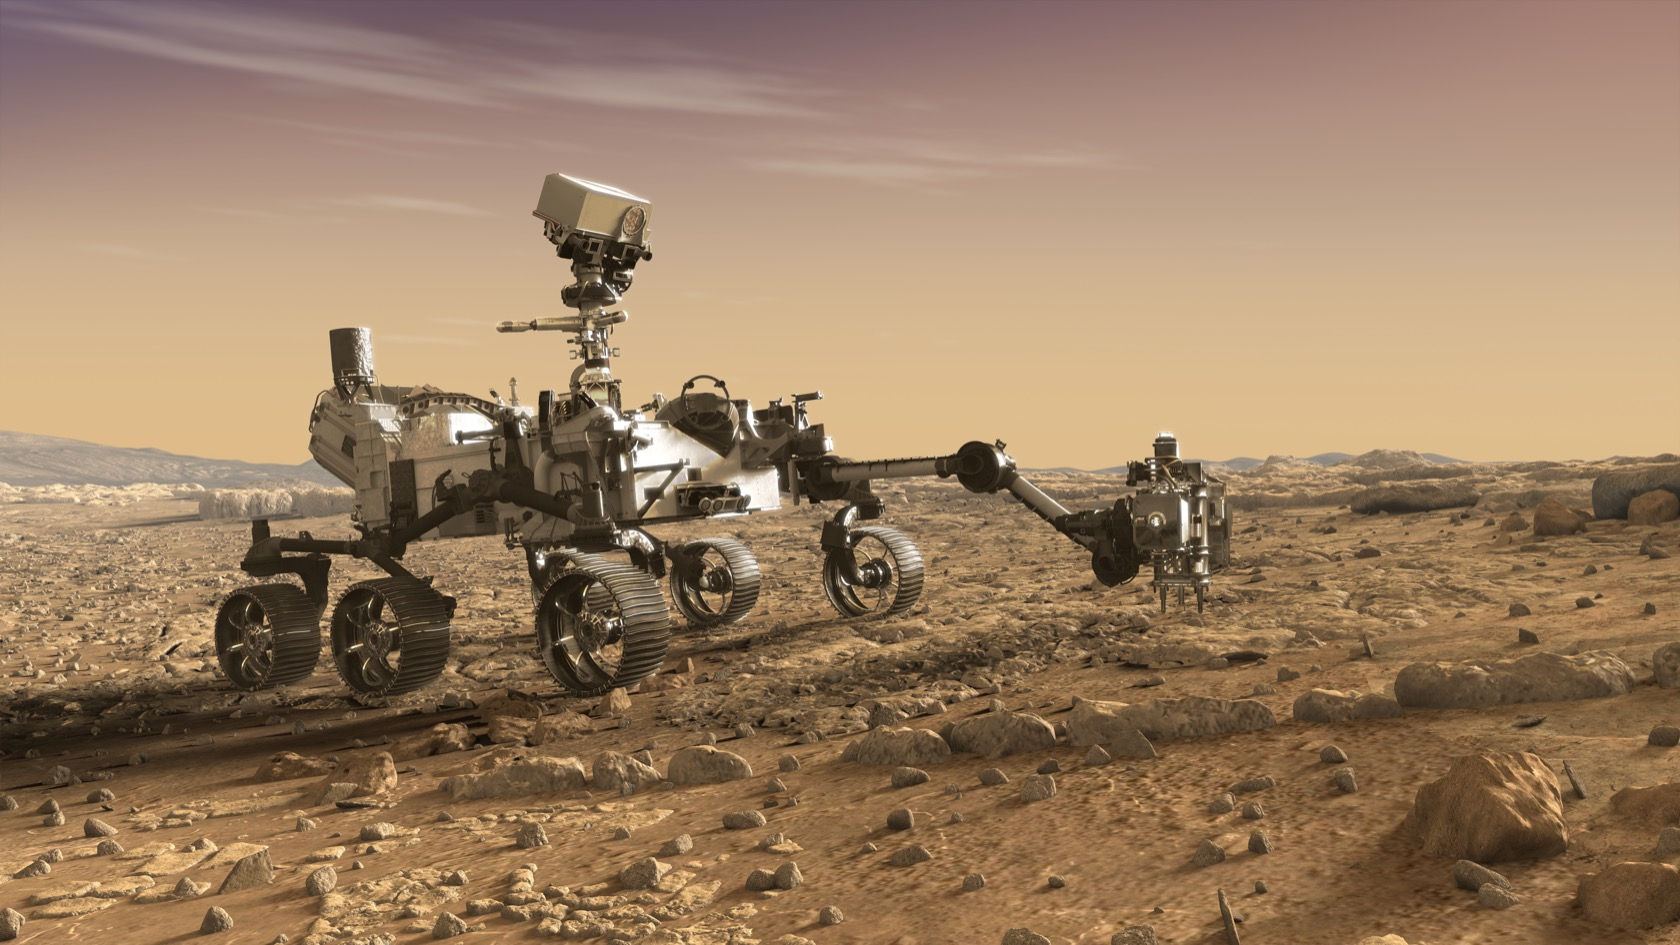 mars rover 2020 esa - photo #19